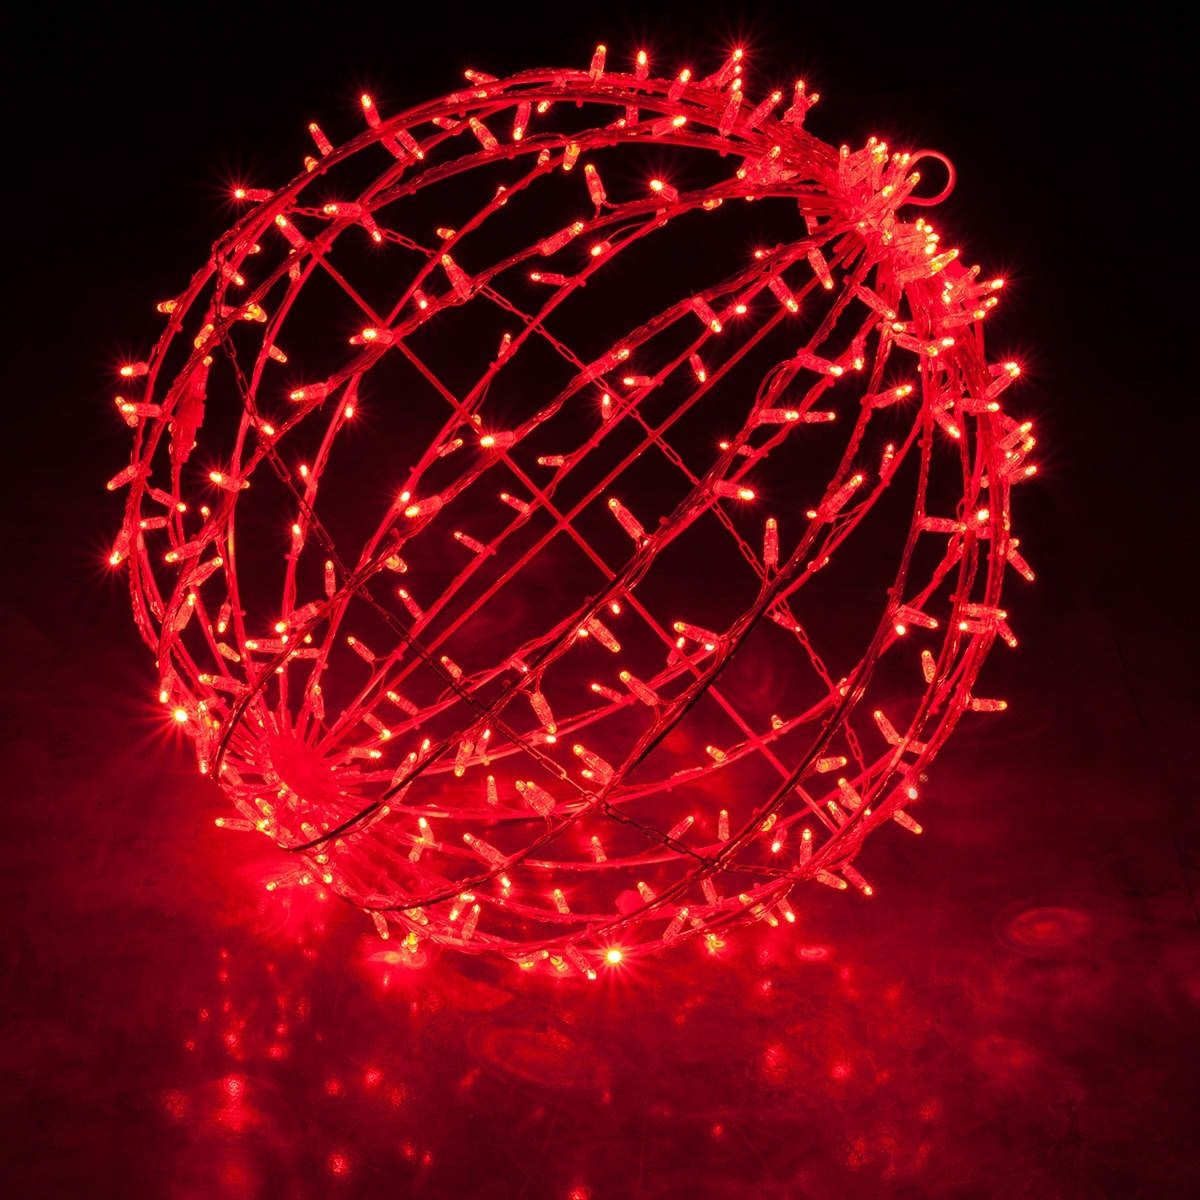 Red Led, Commercial Mega Sphere Christmas Light Ball, Fold Flat Regarding Outdoor Hanging Sphere Lights (View 12 of 15)